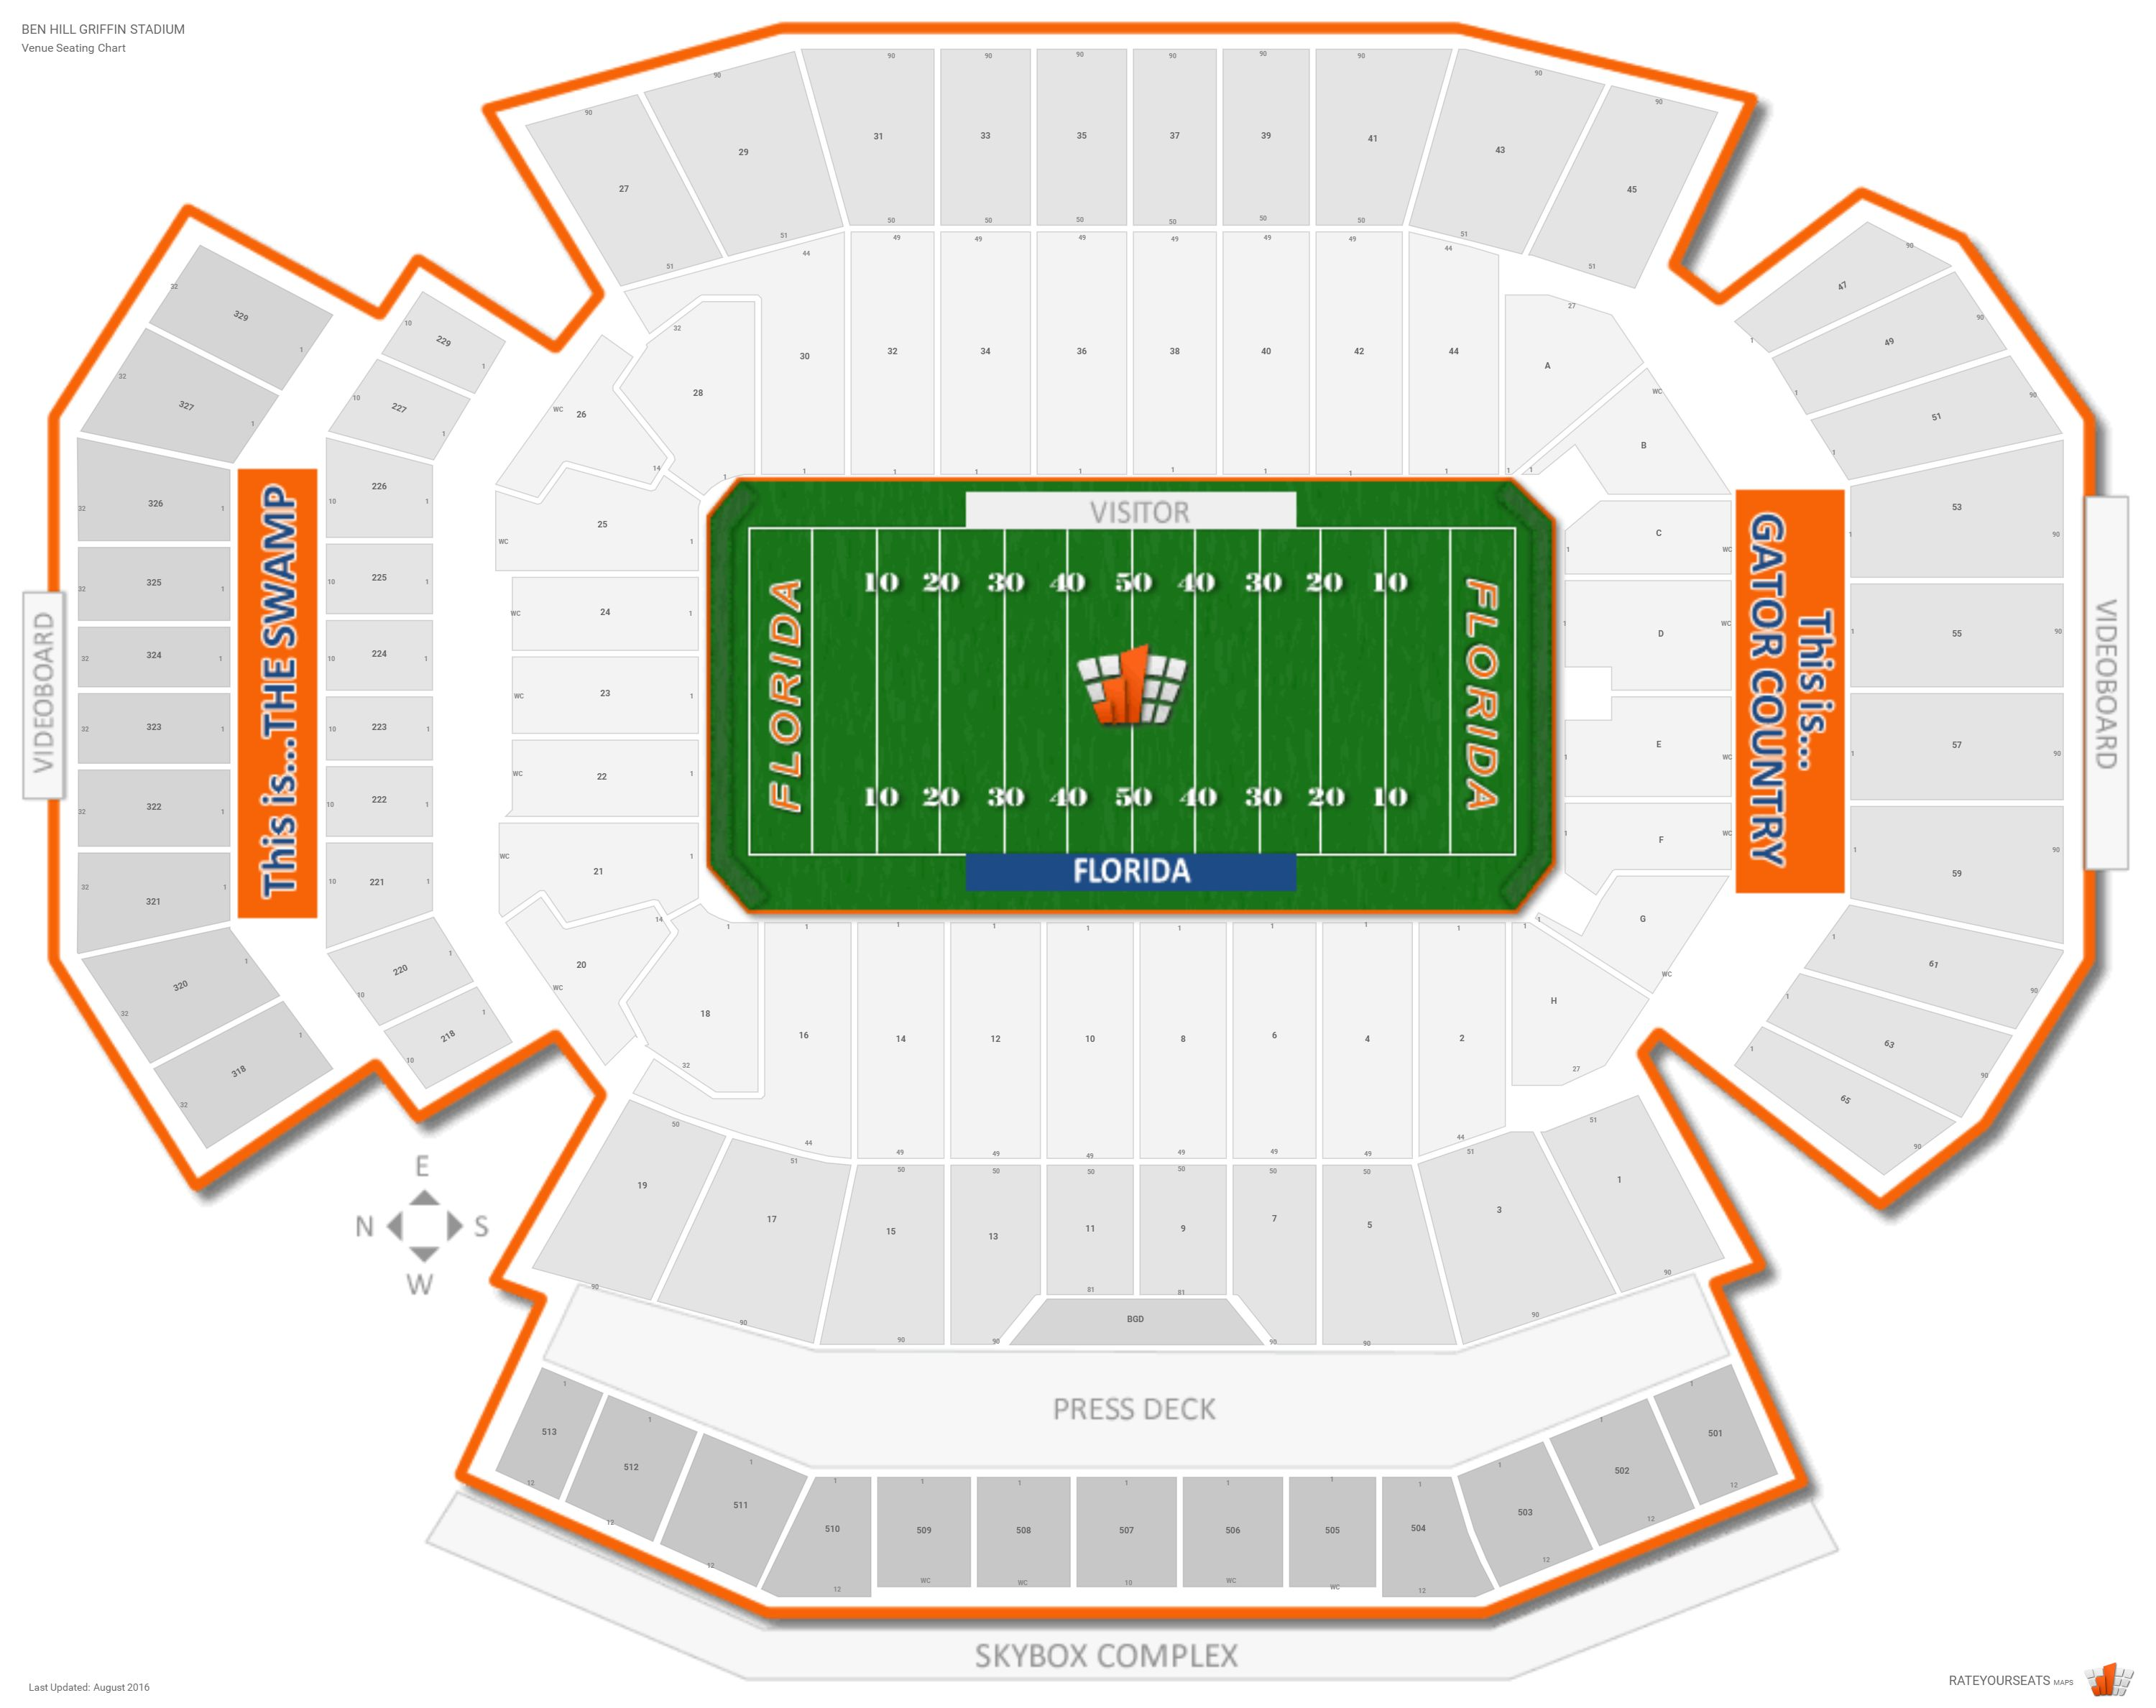 Ben Hill Griffin Stadium (Florida) Seating Guide   RateYourSeats.com